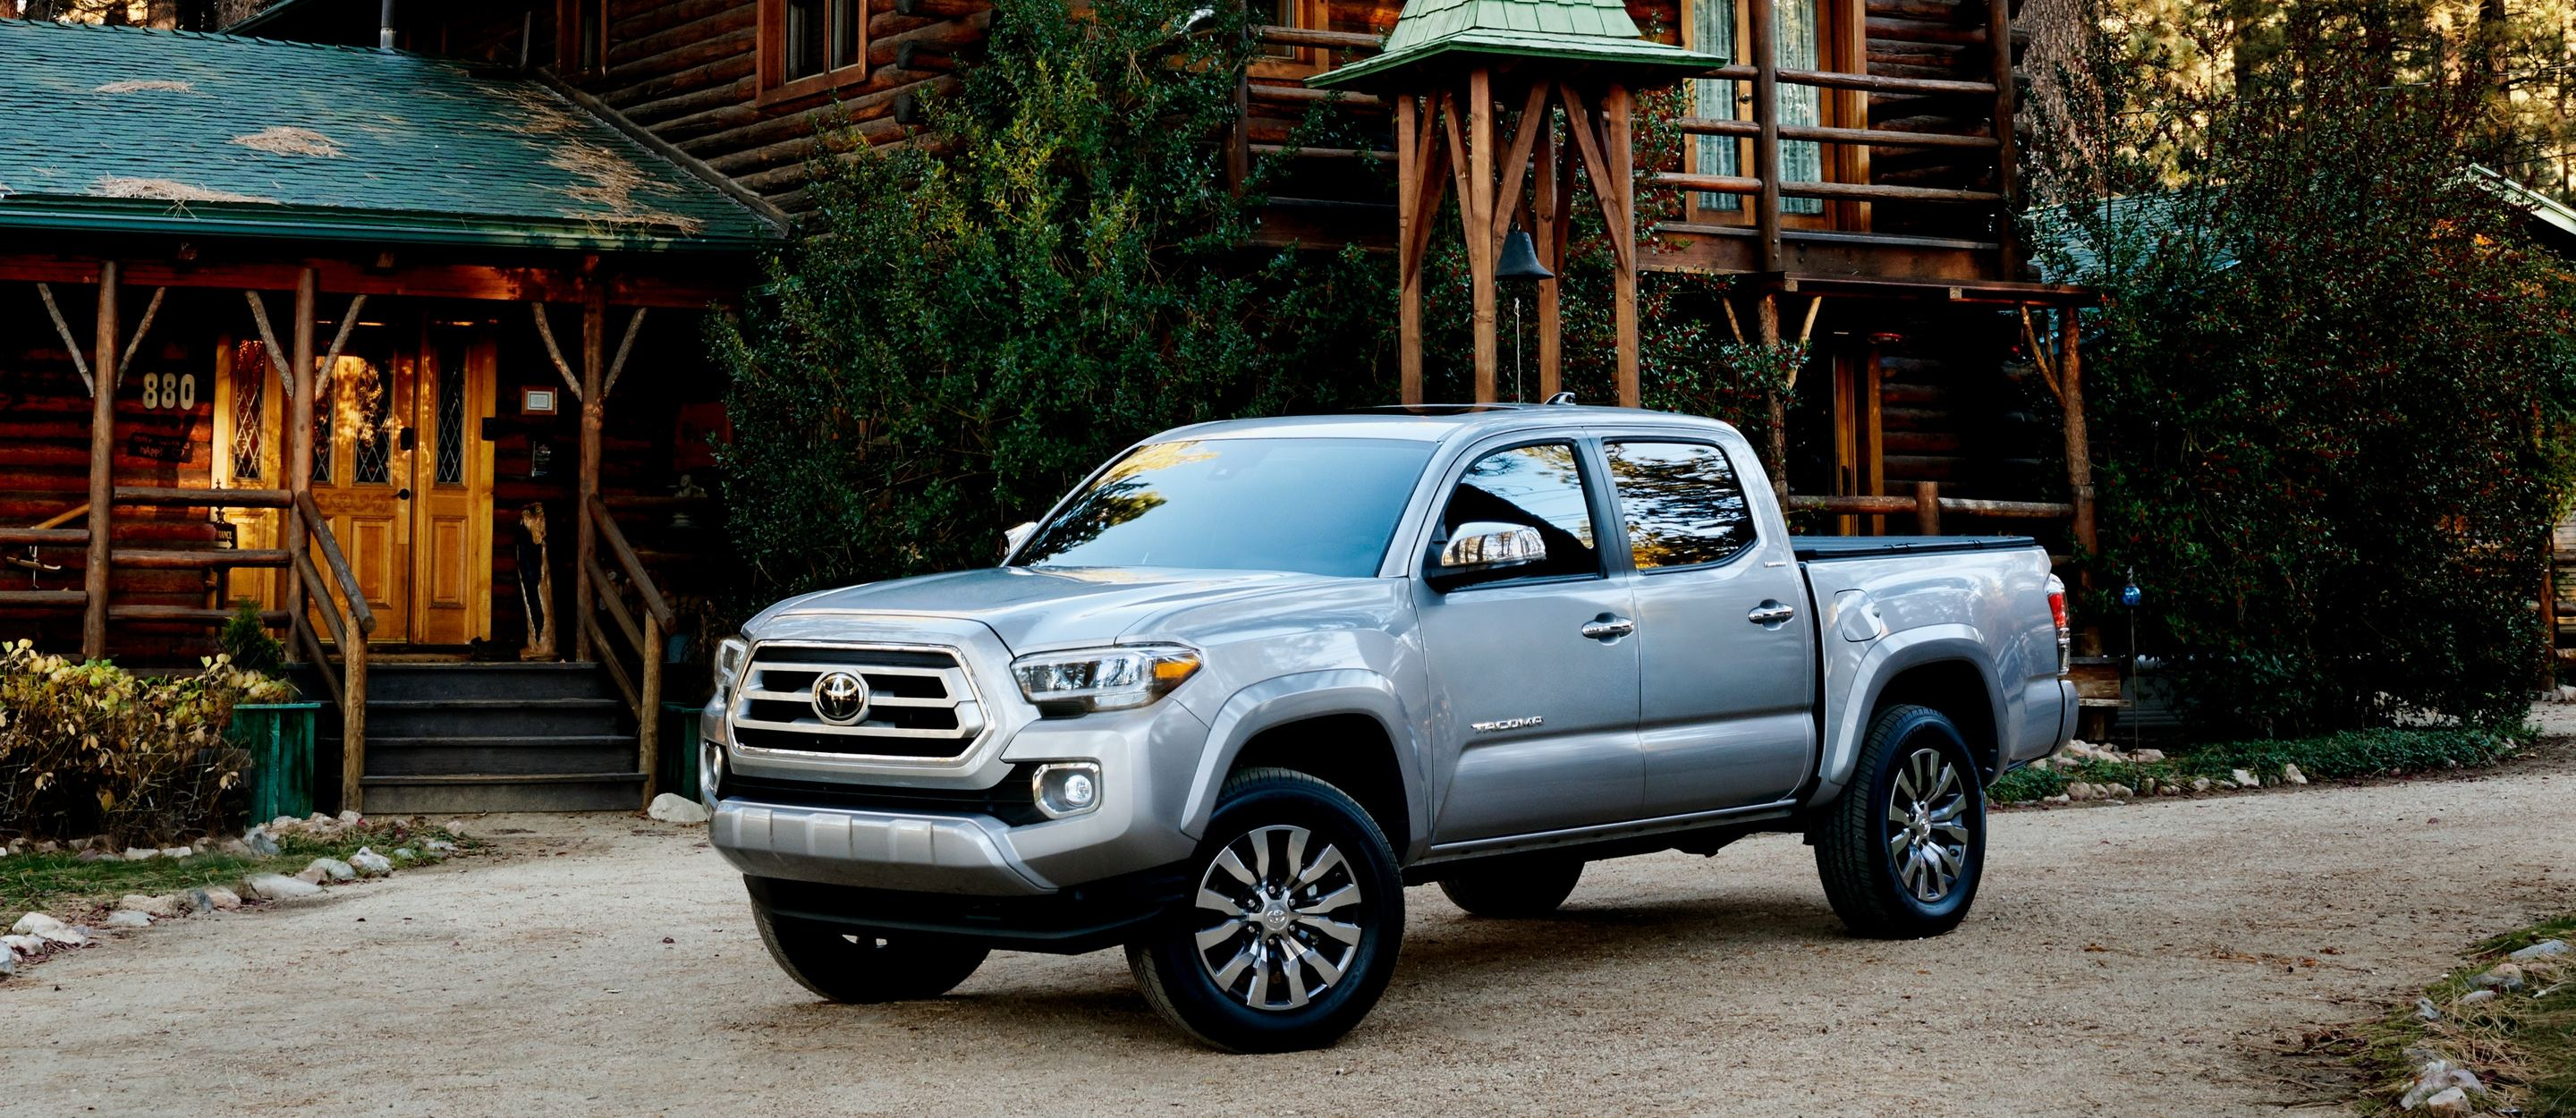 2020 toyota tacoma for sale near glen mills pa certified 2020 toyota tacoma trd offroad v6 4d double cab